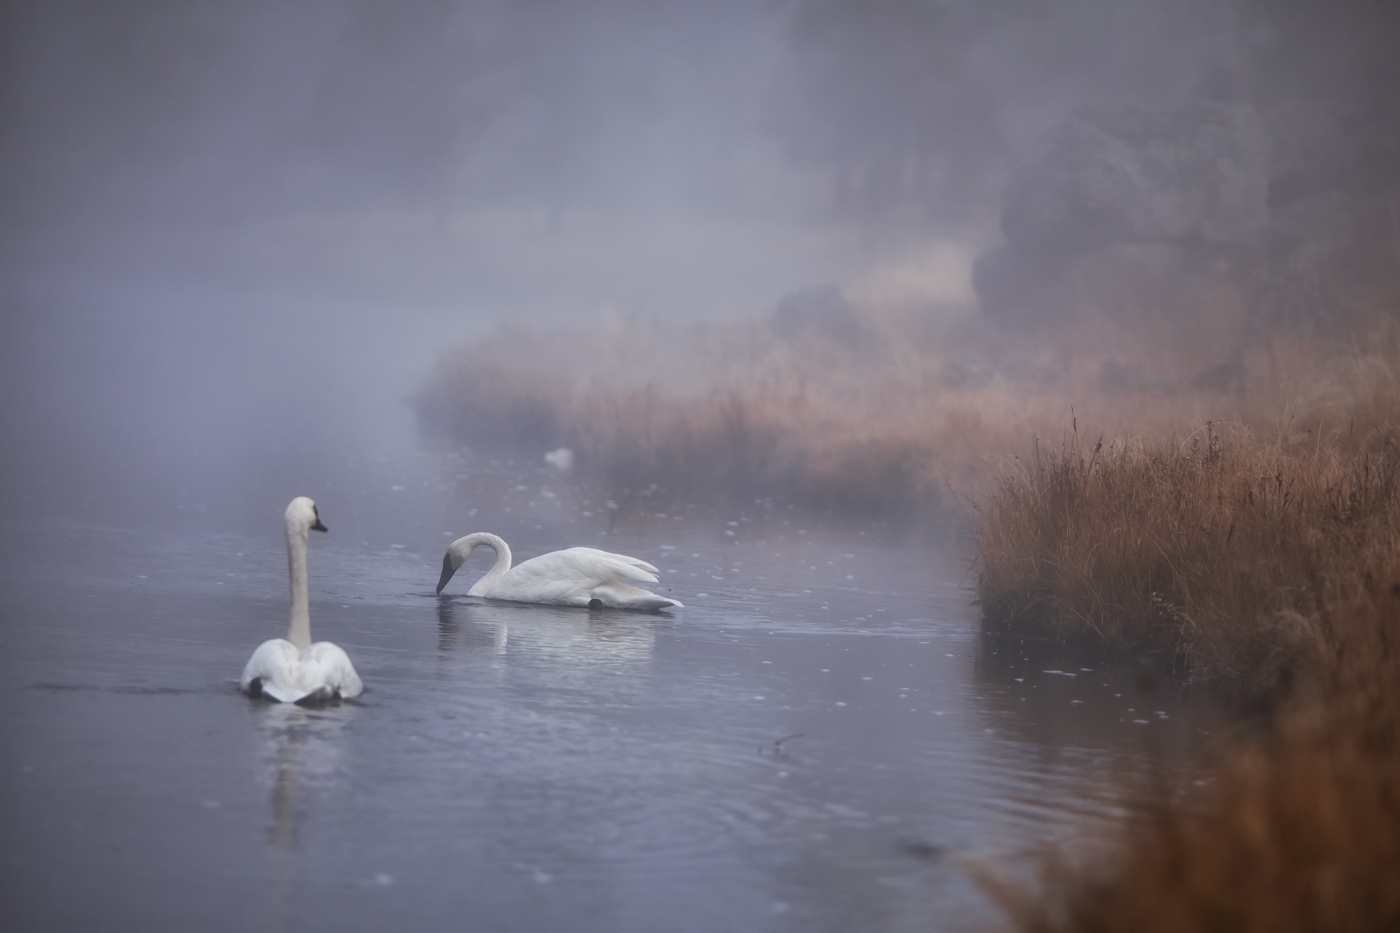 Swans in the morning mist, listen to the silence